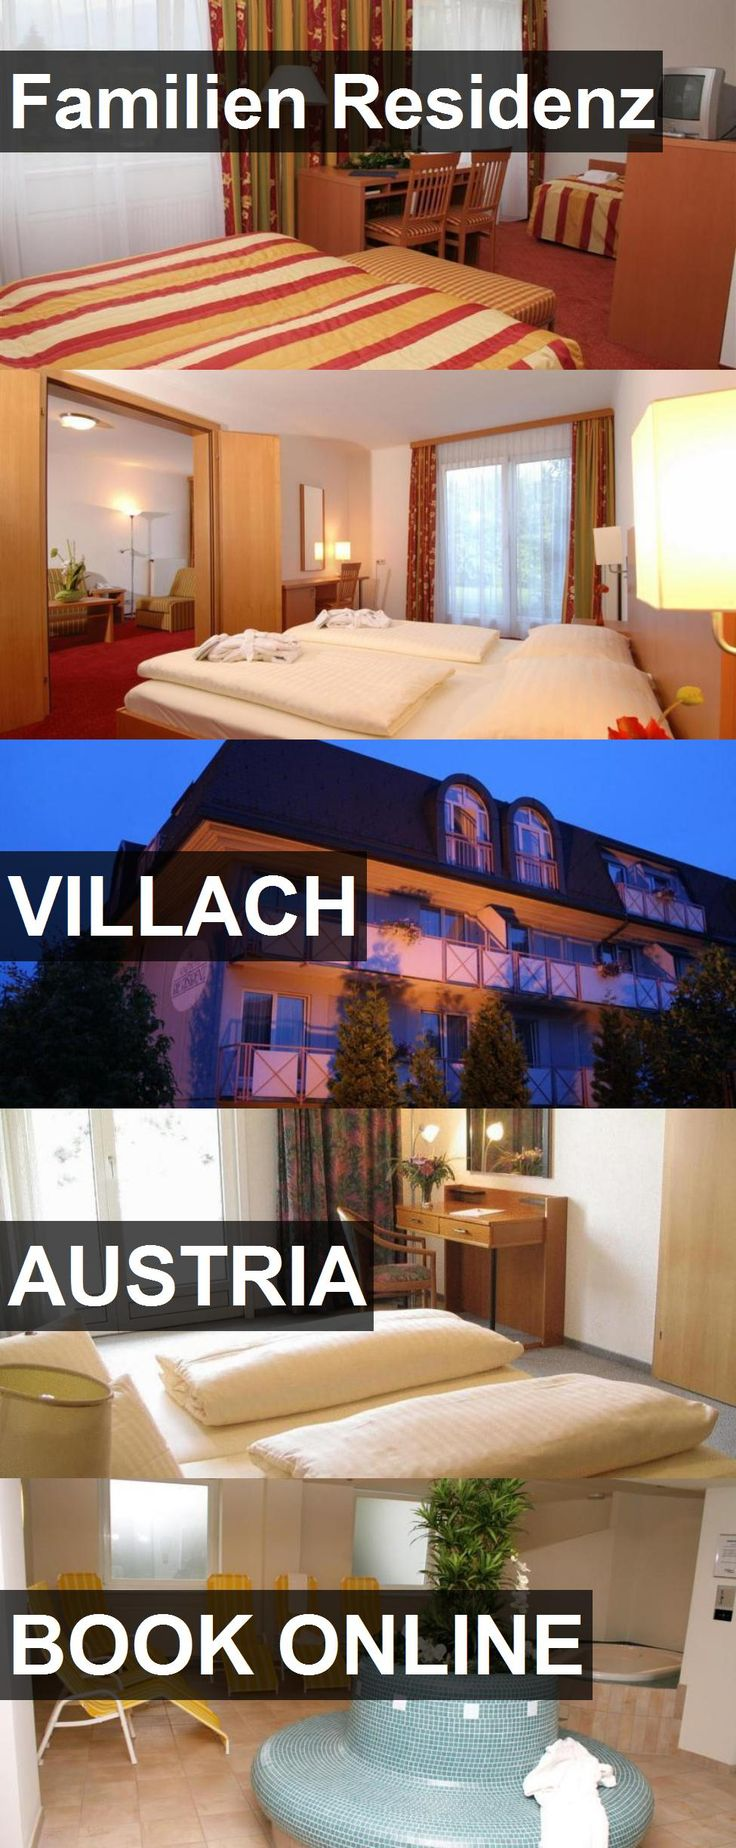 Hotel Familien Residenz in Villach, Austria. For more information, photos, reviews and best prices please follow the link. #Austria #Villach #travel #vacation #hotel